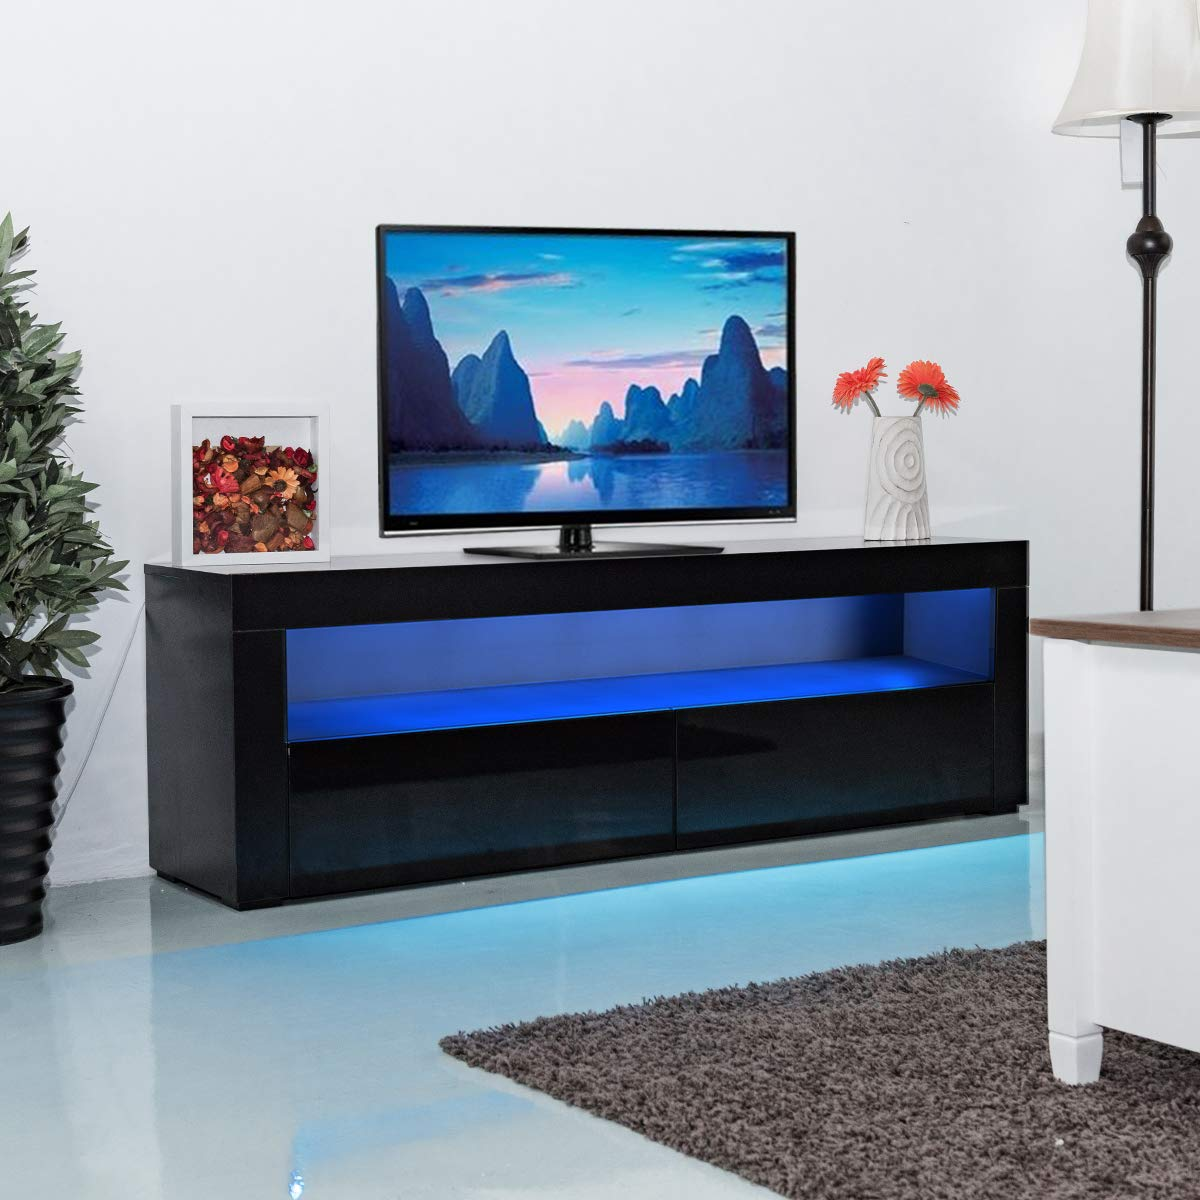 Amazon com tangkula modern tv stand high gloss media console cabinet entertainment center with led shelf and drawers black kitchen dining